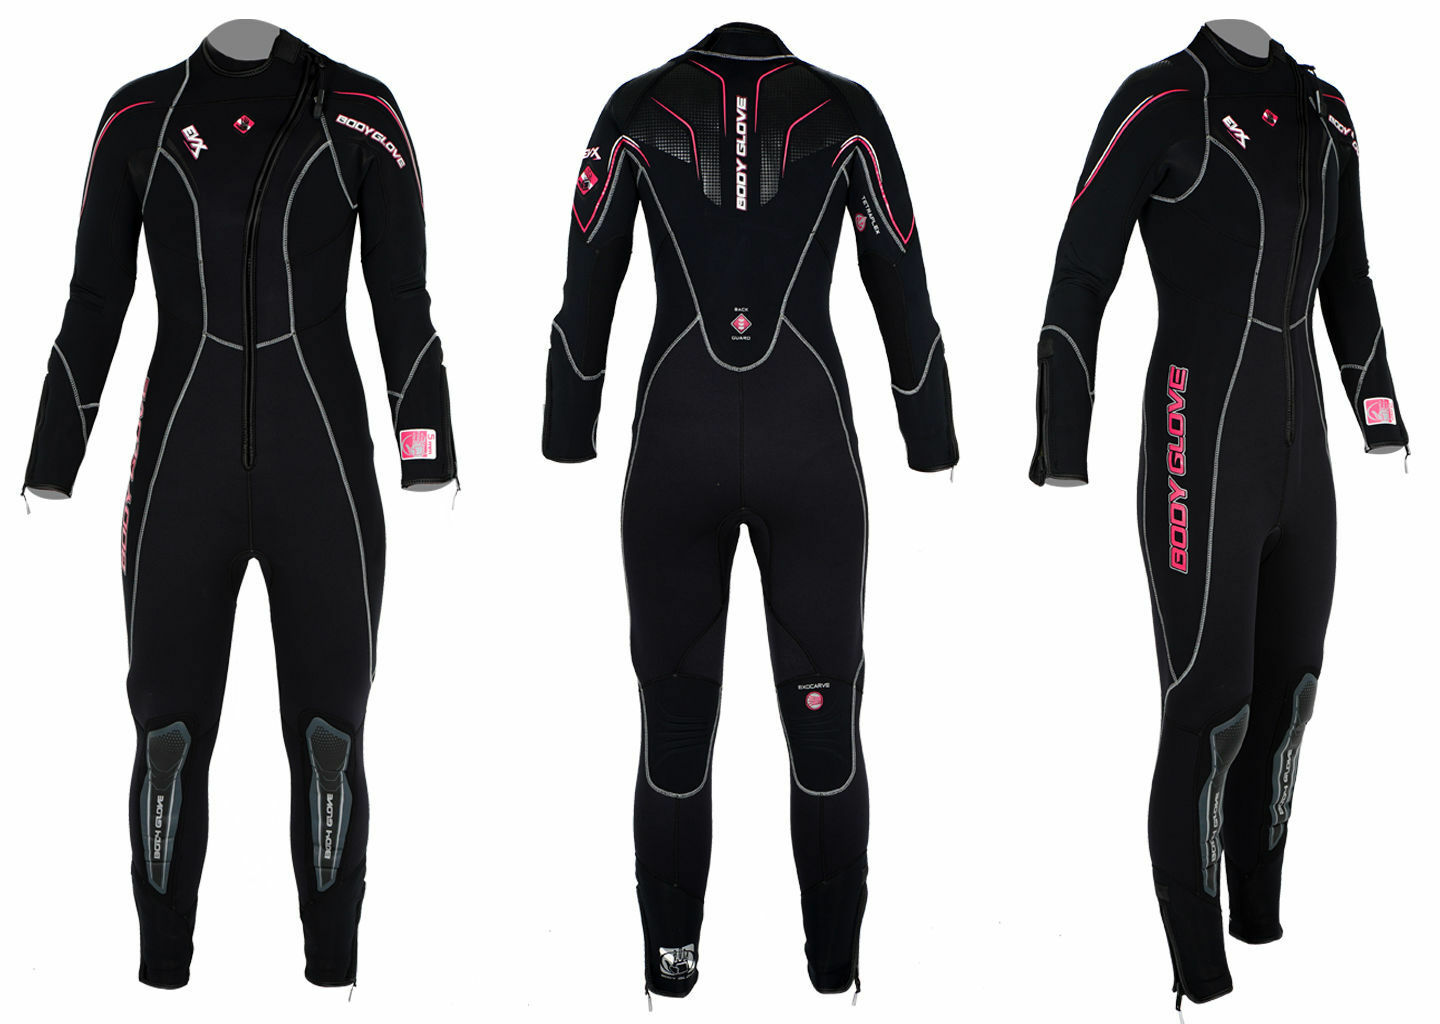 Body G  Evx Front Zip 0 3 16in  Wetsuit Women's Wetsuit Diving Suit Surf Kite  with cheap price to get top brand